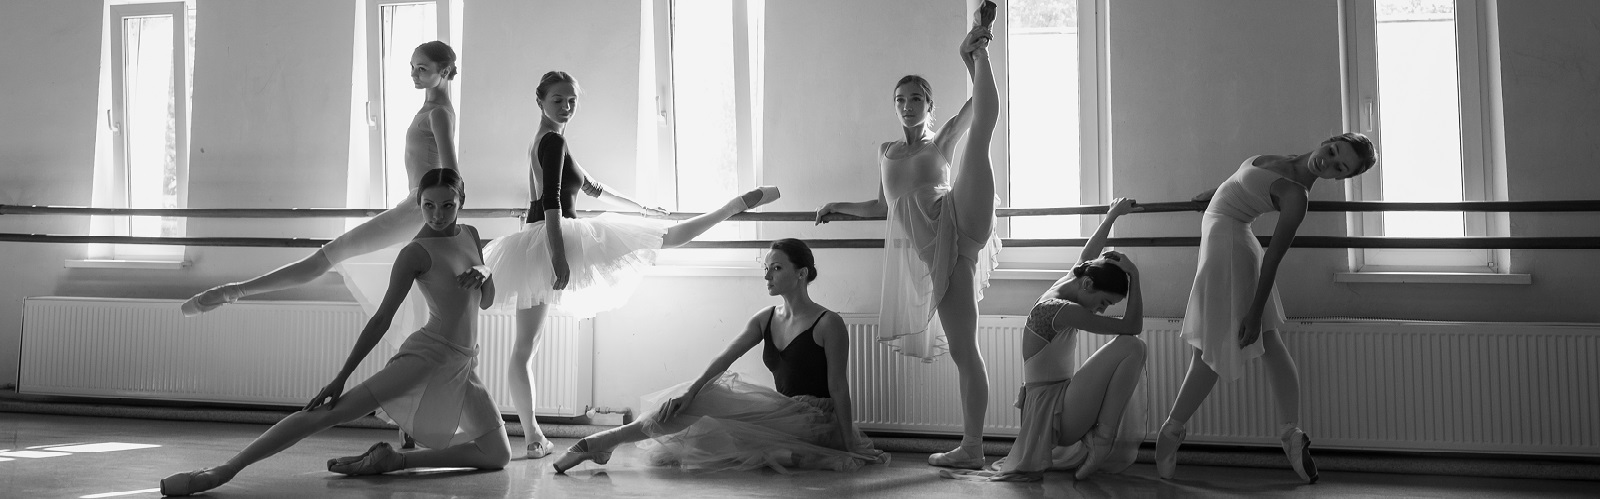 Counselling for Dancers Terry Hyde MA MBACP. Psychotherapist/Counsellor and Ex Dancer